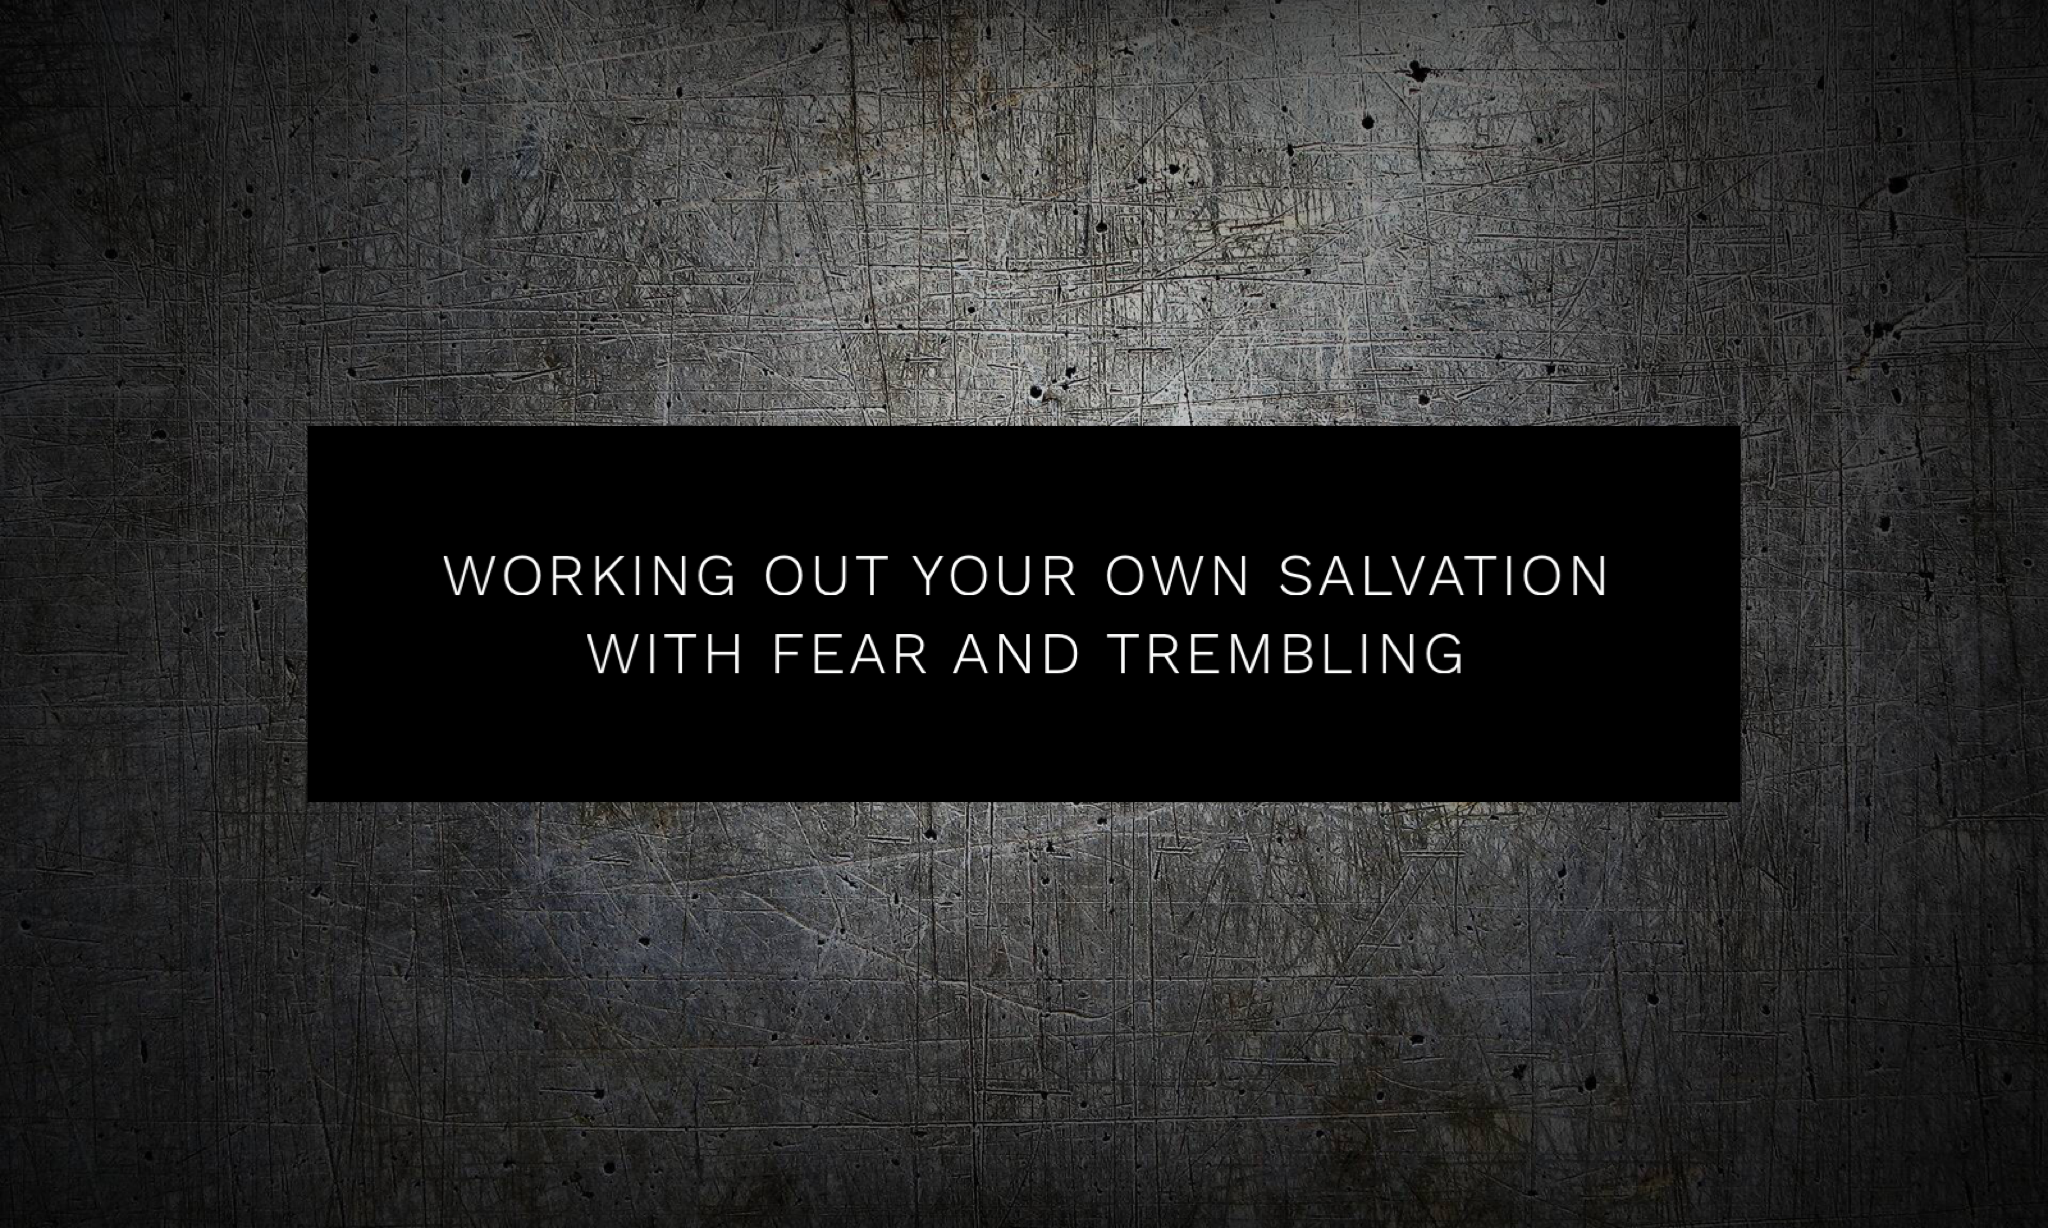 Working out your own Salvation with Fear and Trembling